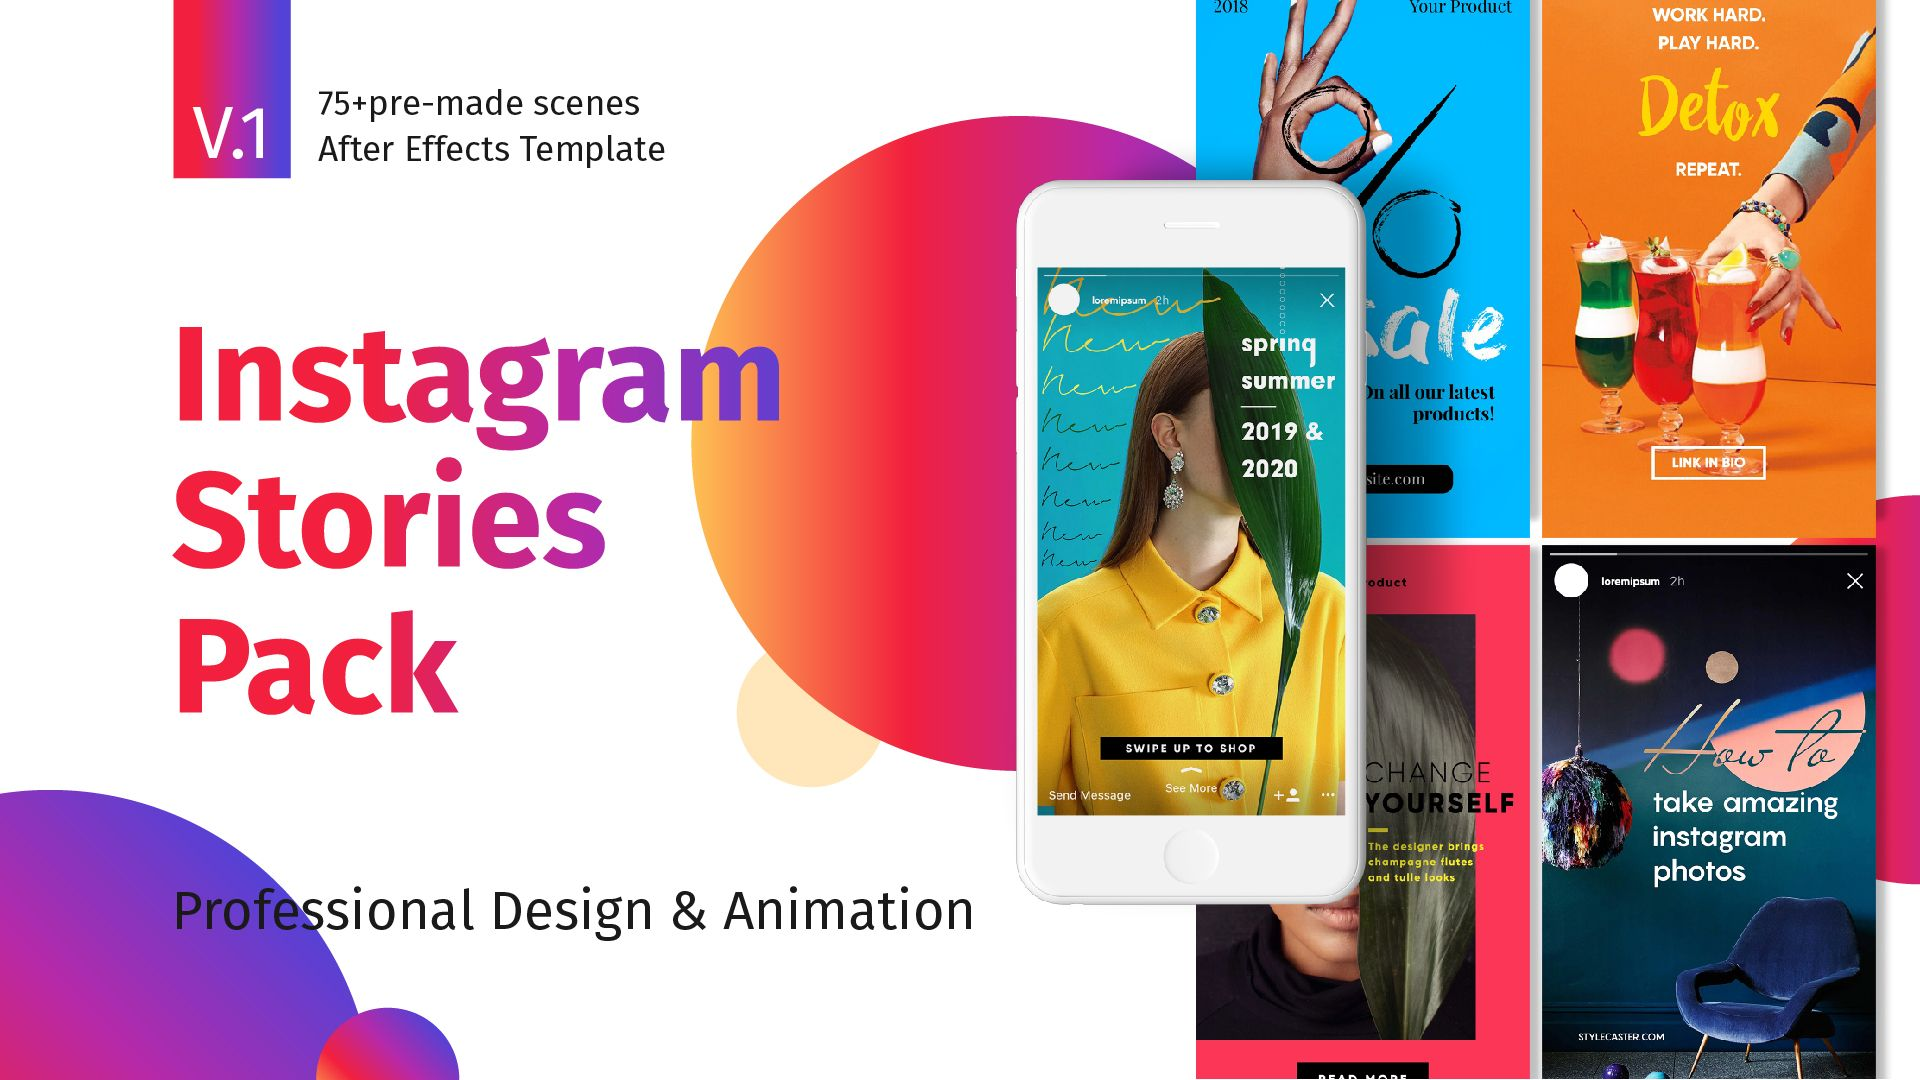 Instagram Stories Pack Ad Instagram Sponsored Stories Pack In 2020 Instagram Story After Effects Instagram